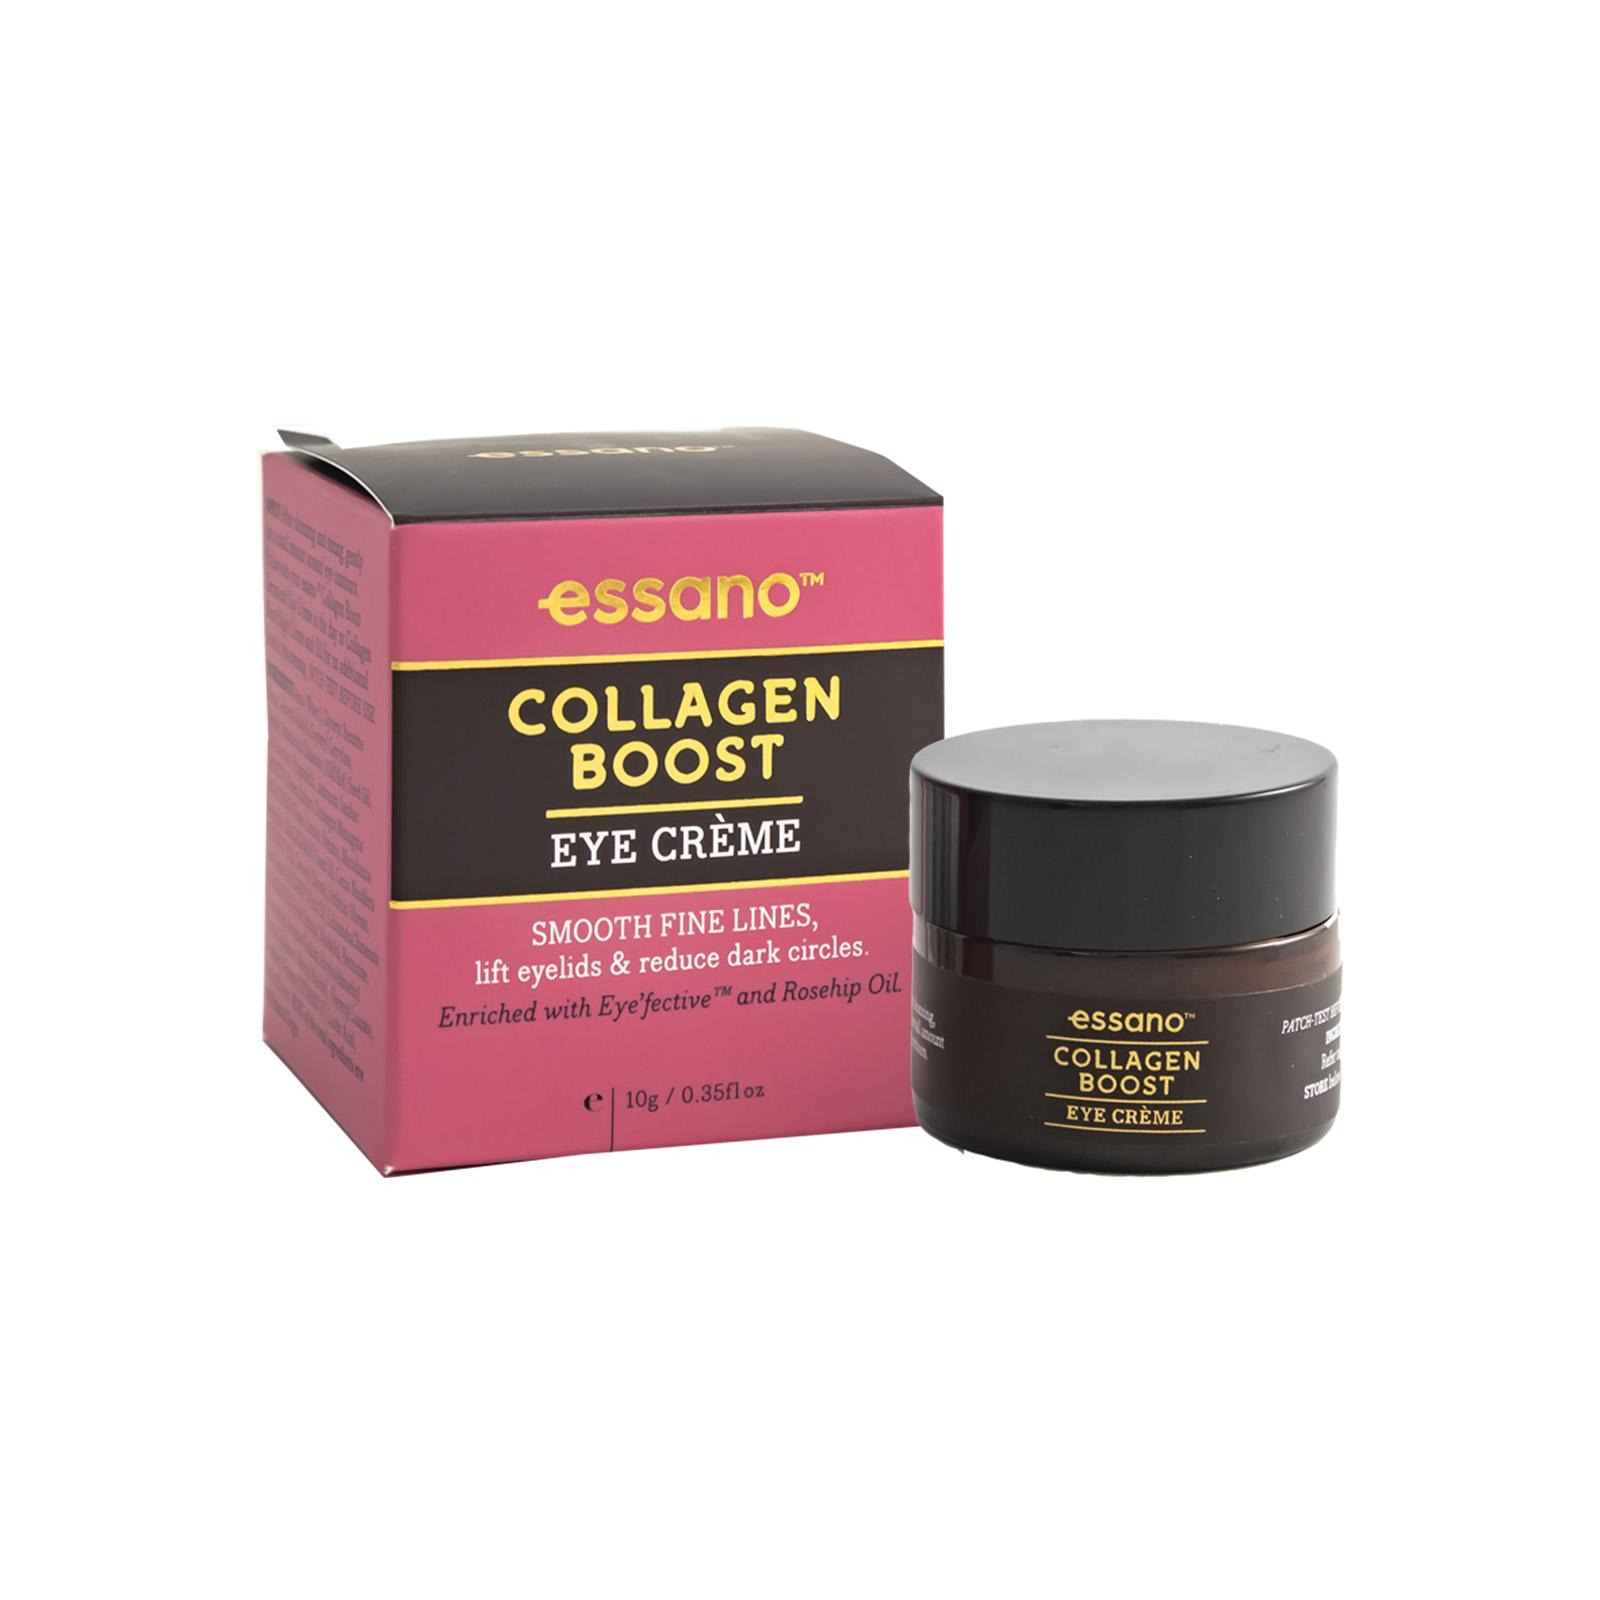 Essano Collagen Boost Eye Cream